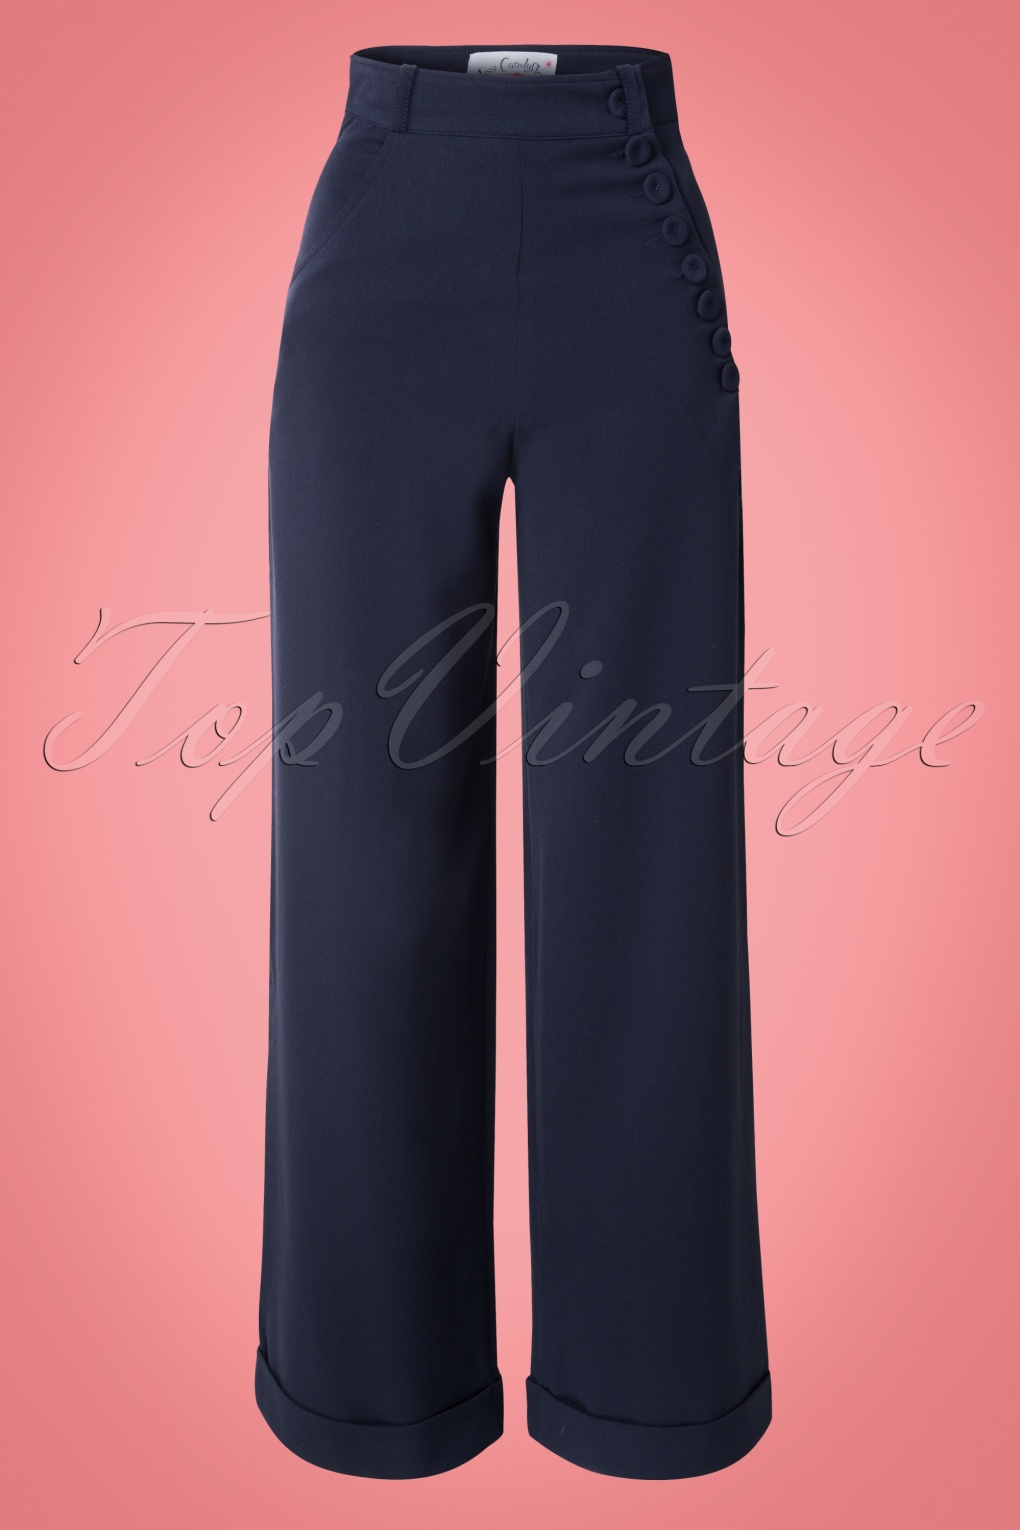 Vintage Wide Leg Pants 1920s to 1950s History 40s Nicolette High Waisted Swing Trousers in Navy £75.23 AT vintagedancer.com